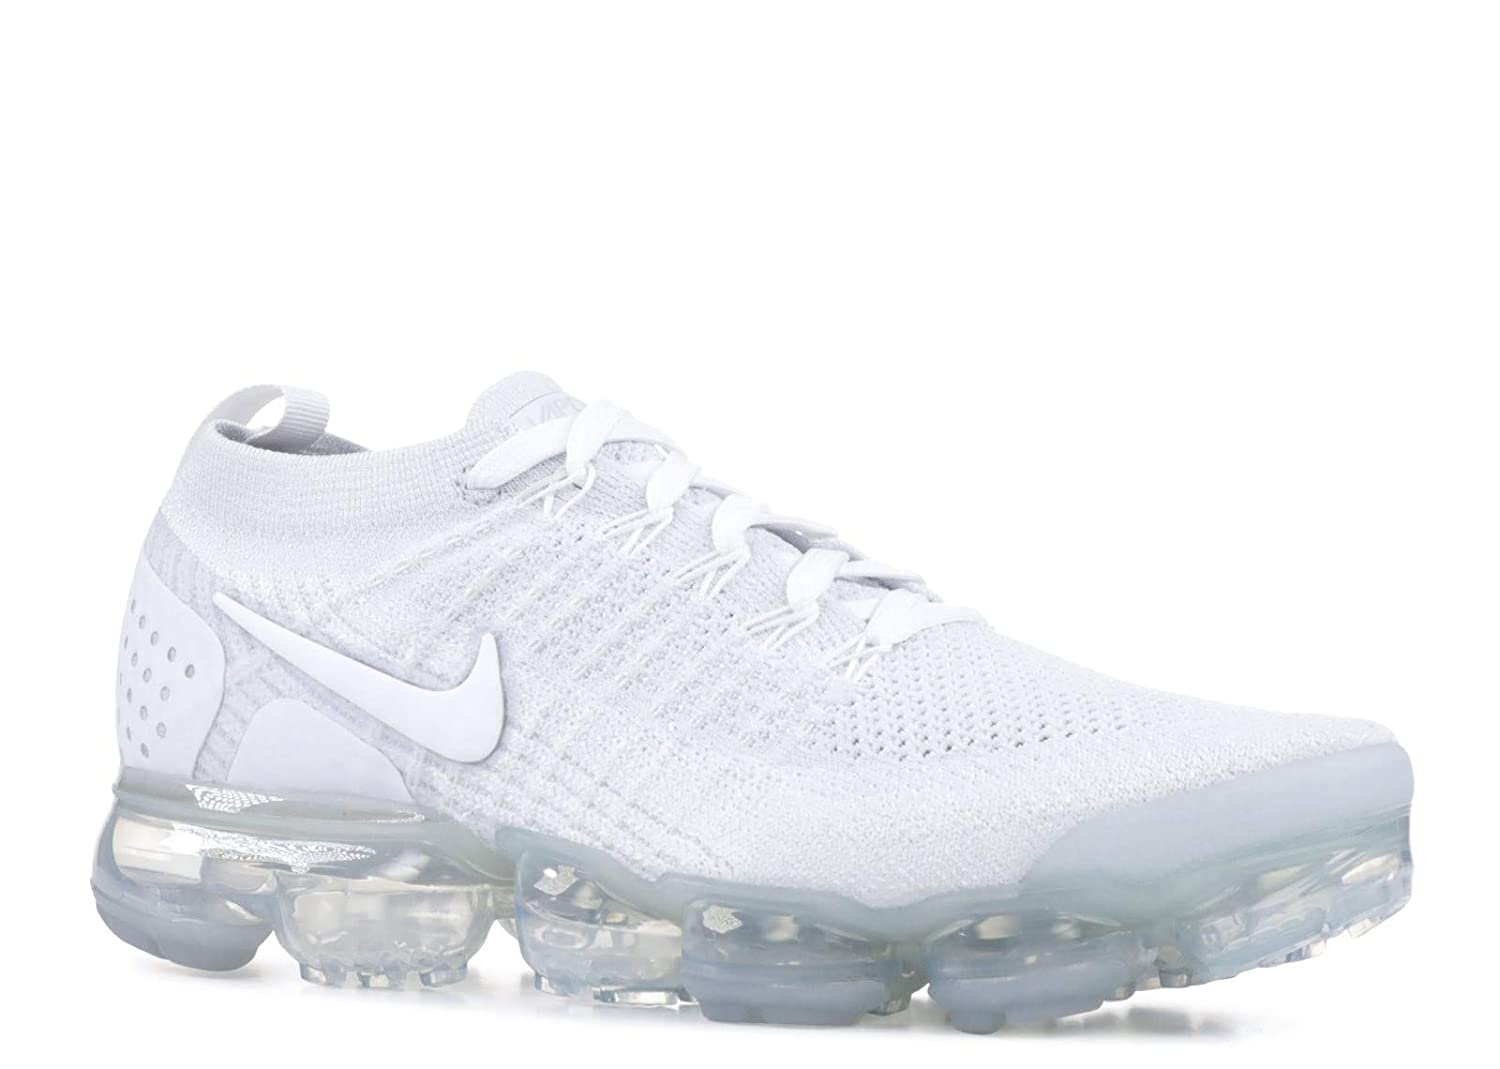 Nike W AIR Vapormax Flyknit 2 'Pure Platinum' 942843 100